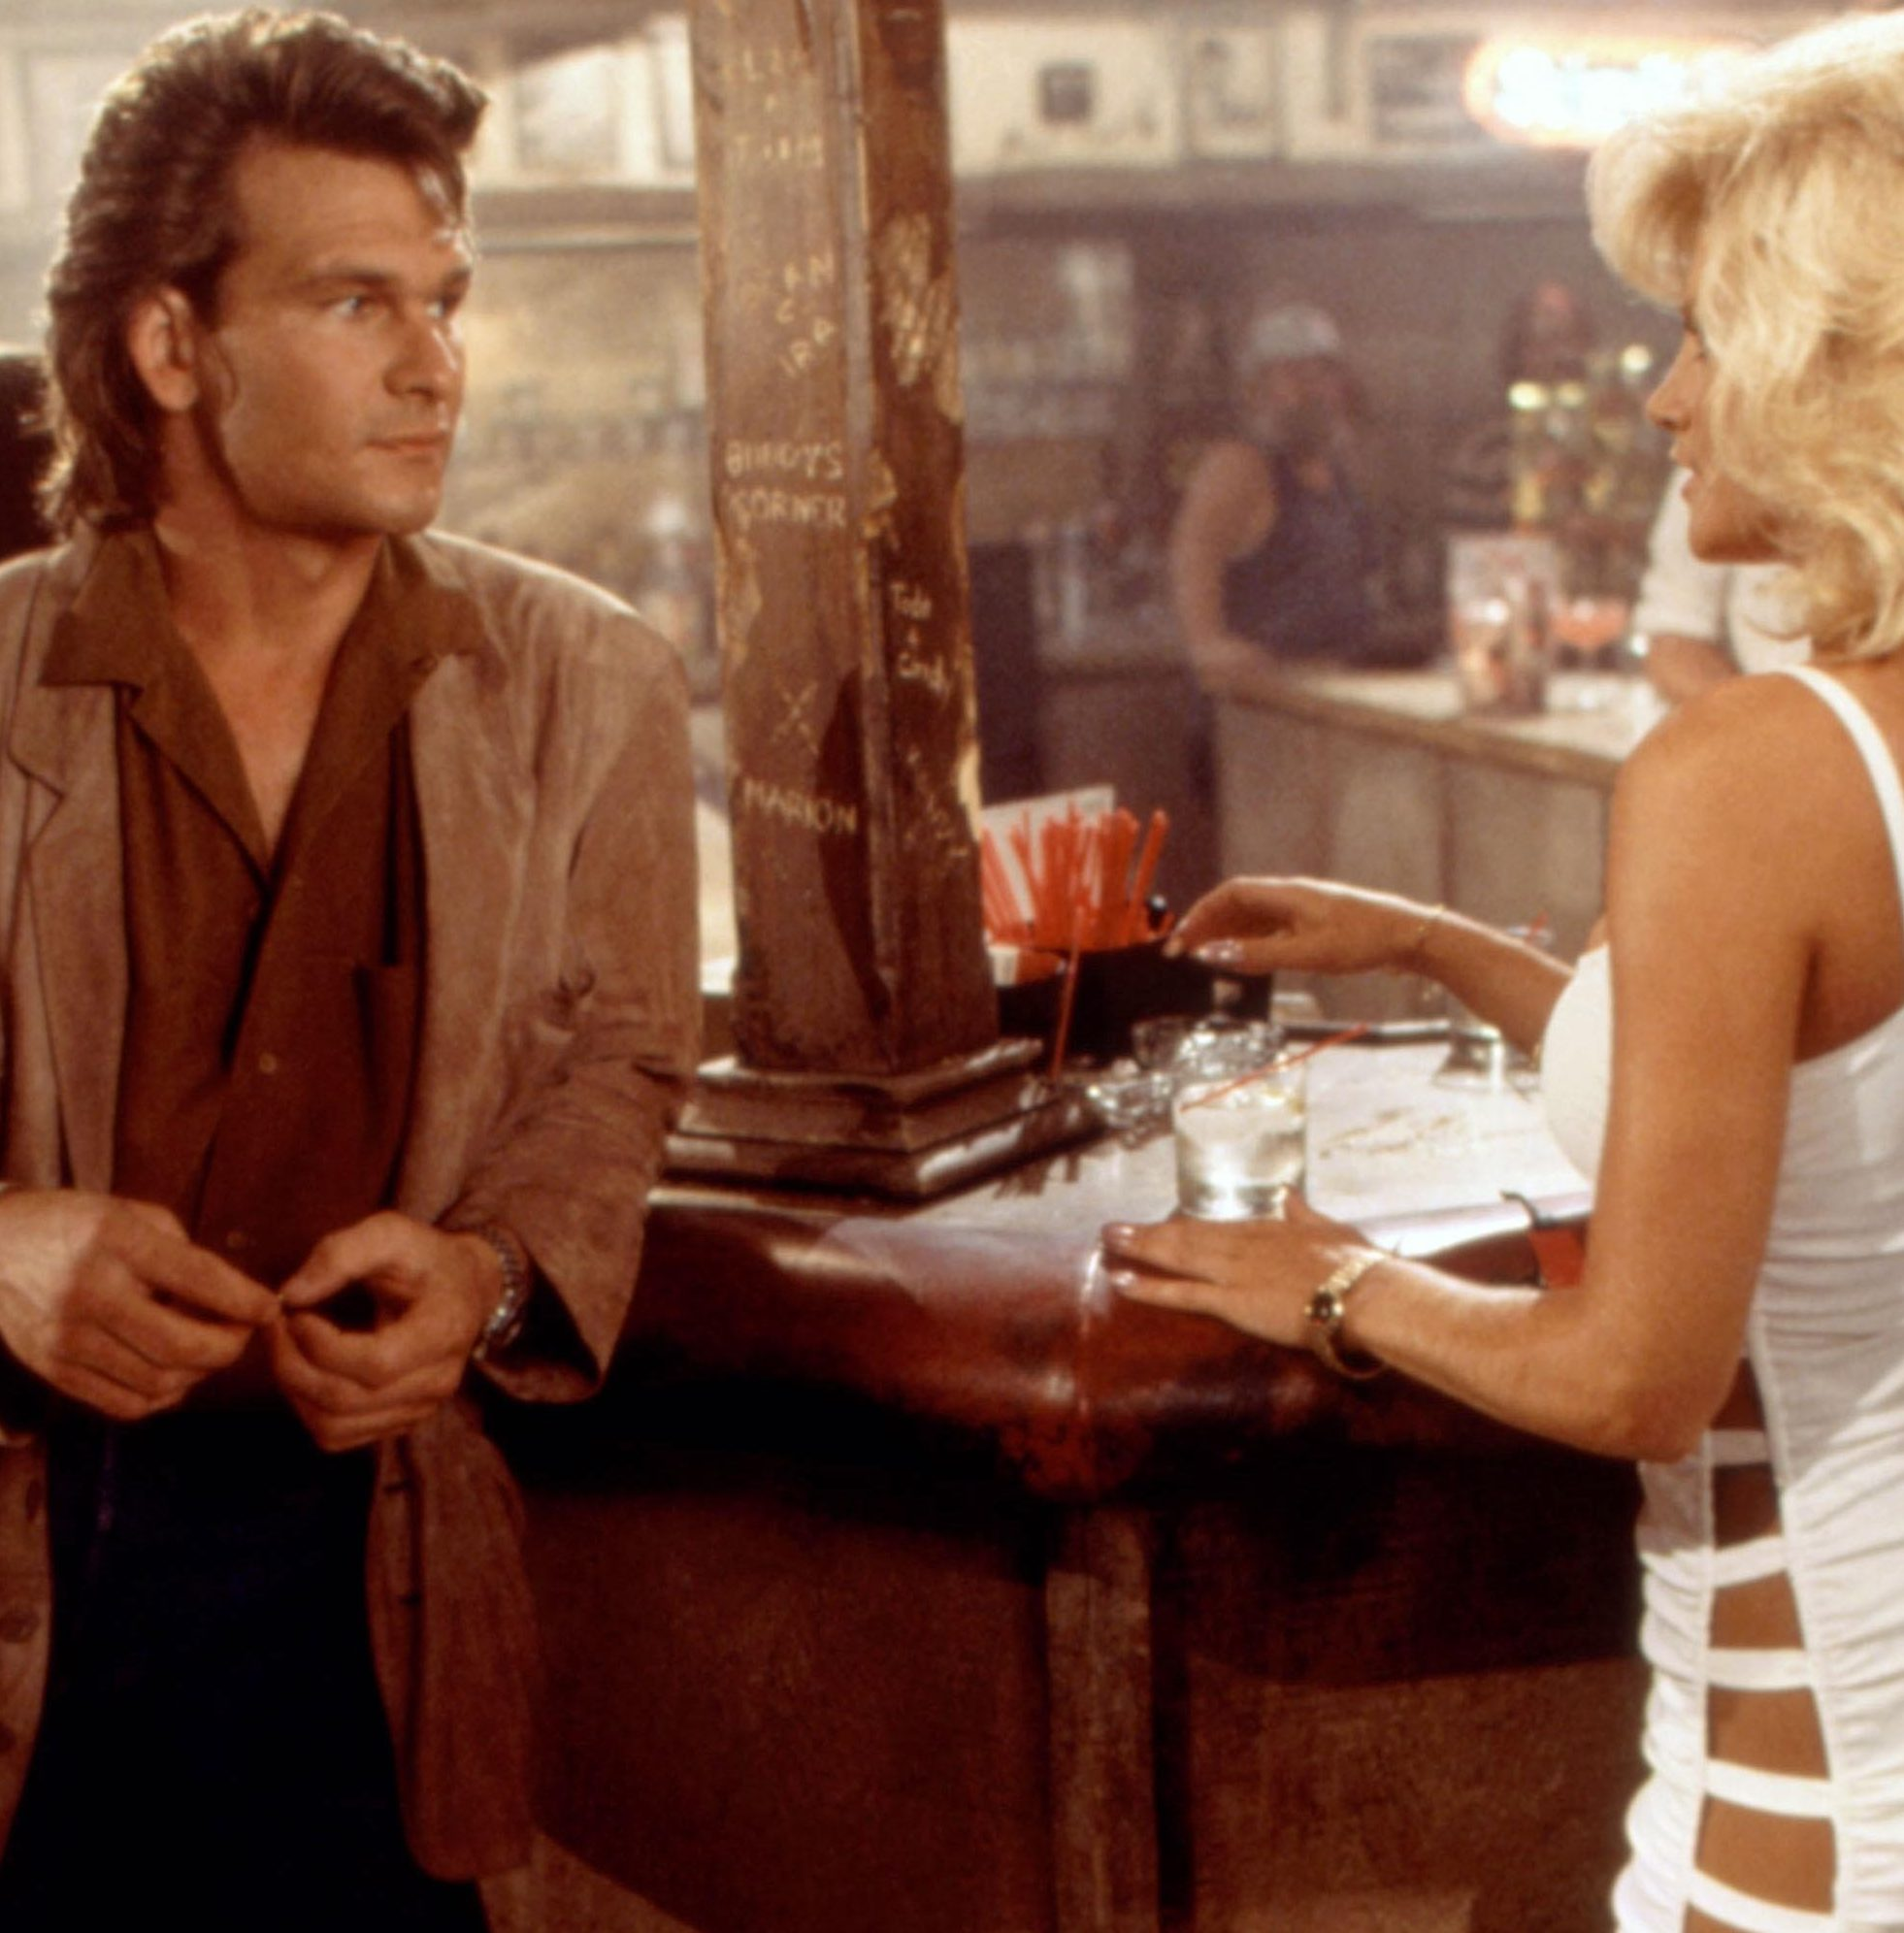 56980380 3031x2018 1 e1598341358374 20 Things You Might Not Have Realised About The 1989 Film Road House